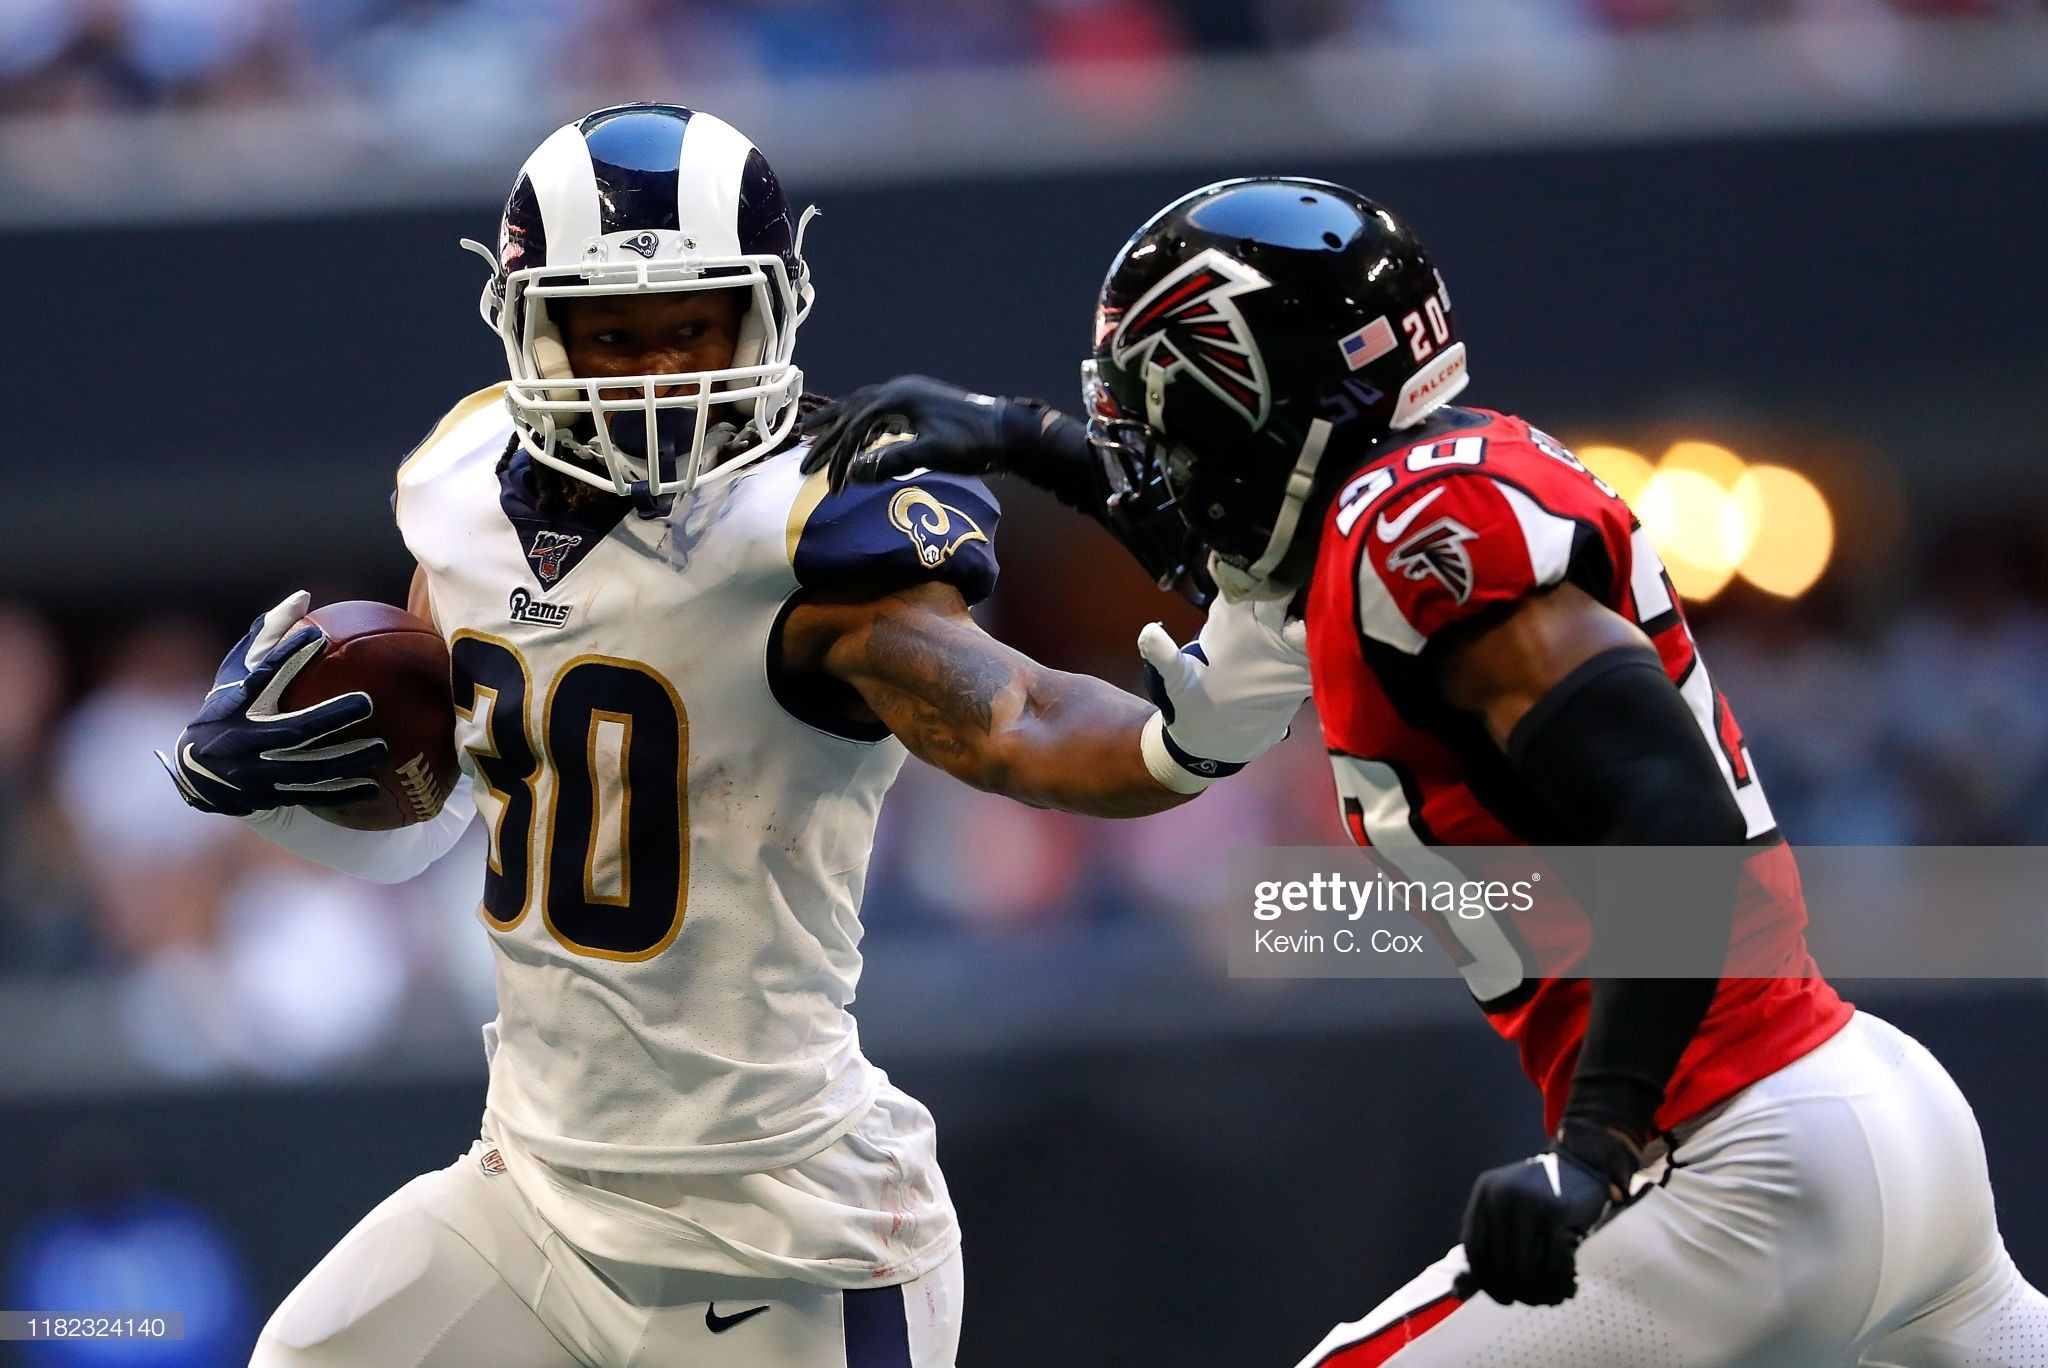 Pin by Jess on TODD GURLEY in 2020 Latest workout, Todd